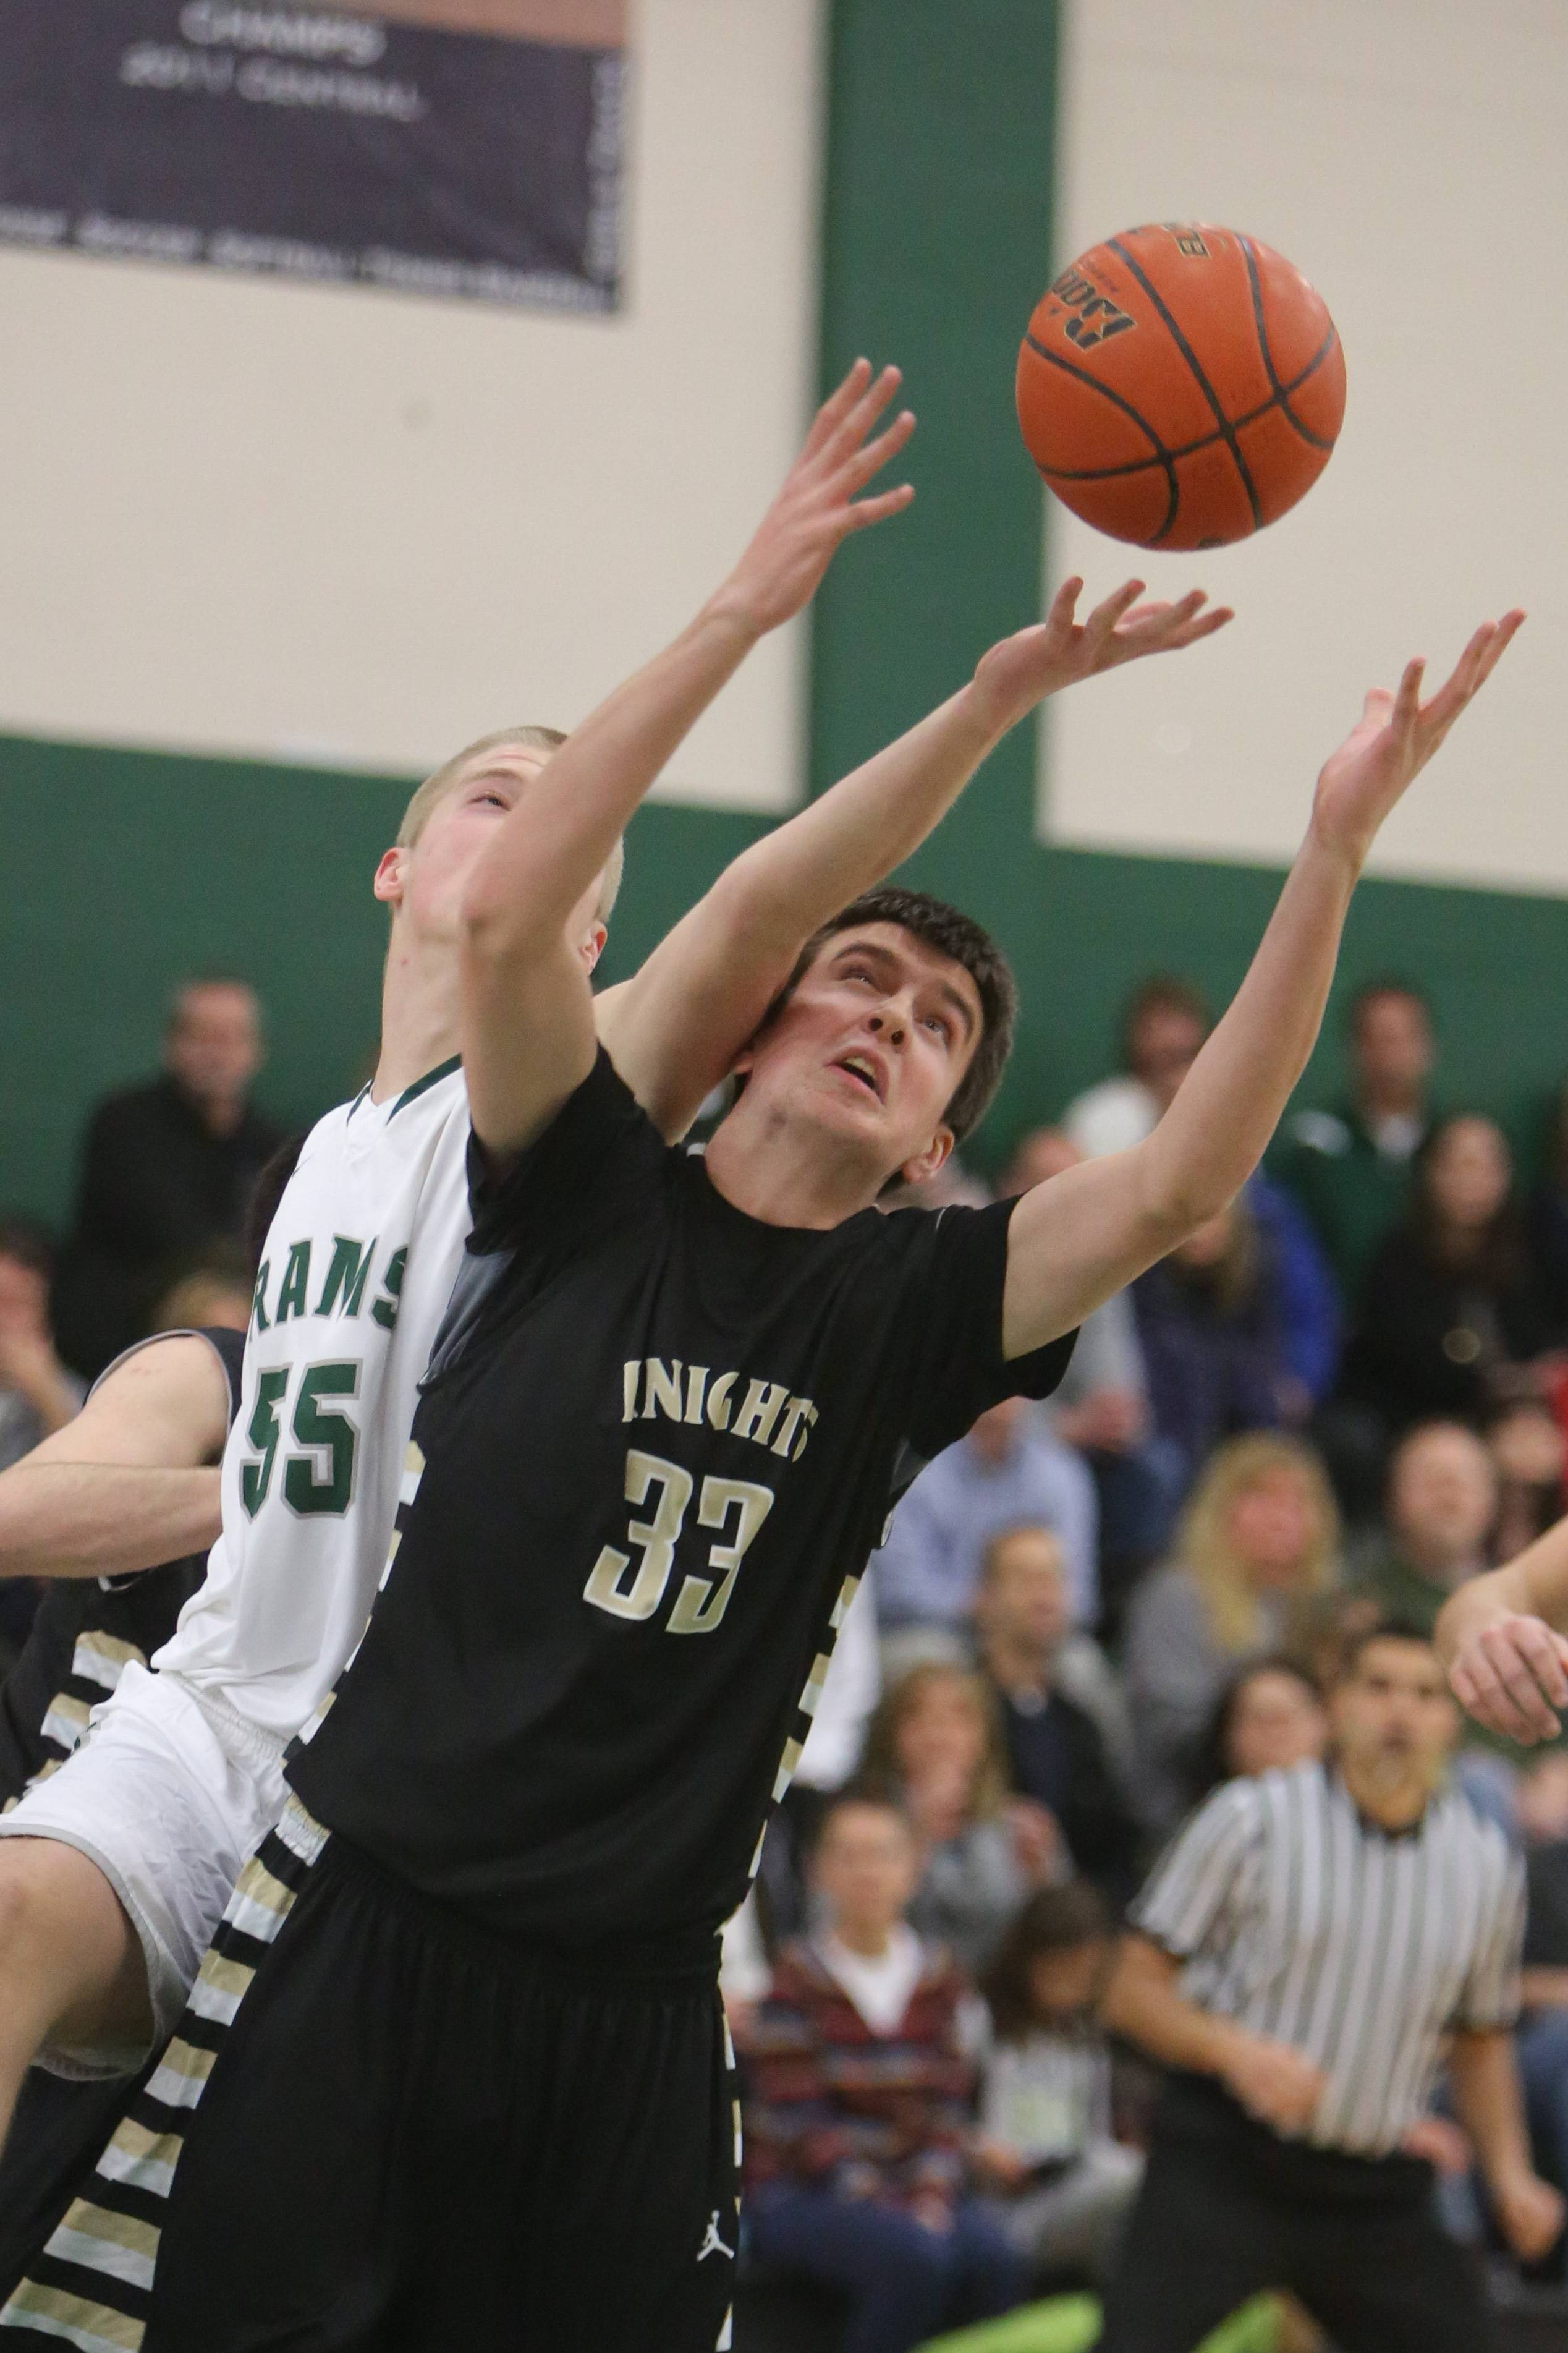 Images from the Grayslake North at Grayslake Central boys basketball game on Tuesday, February 18.